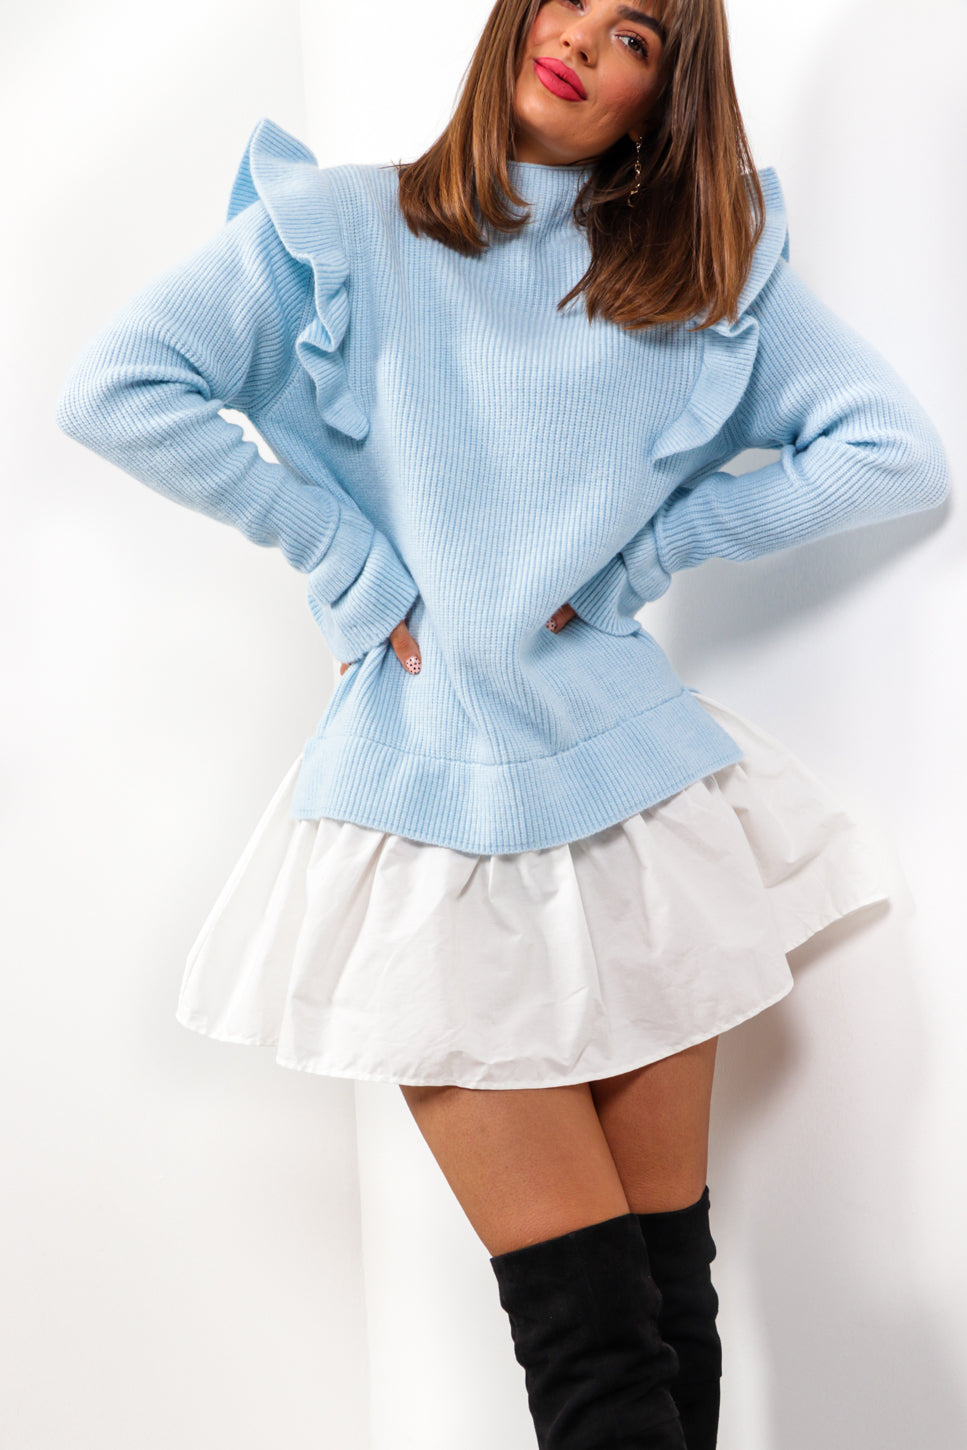 You Frill Be Missed - Blue Frilled Knitted Jumper Dress